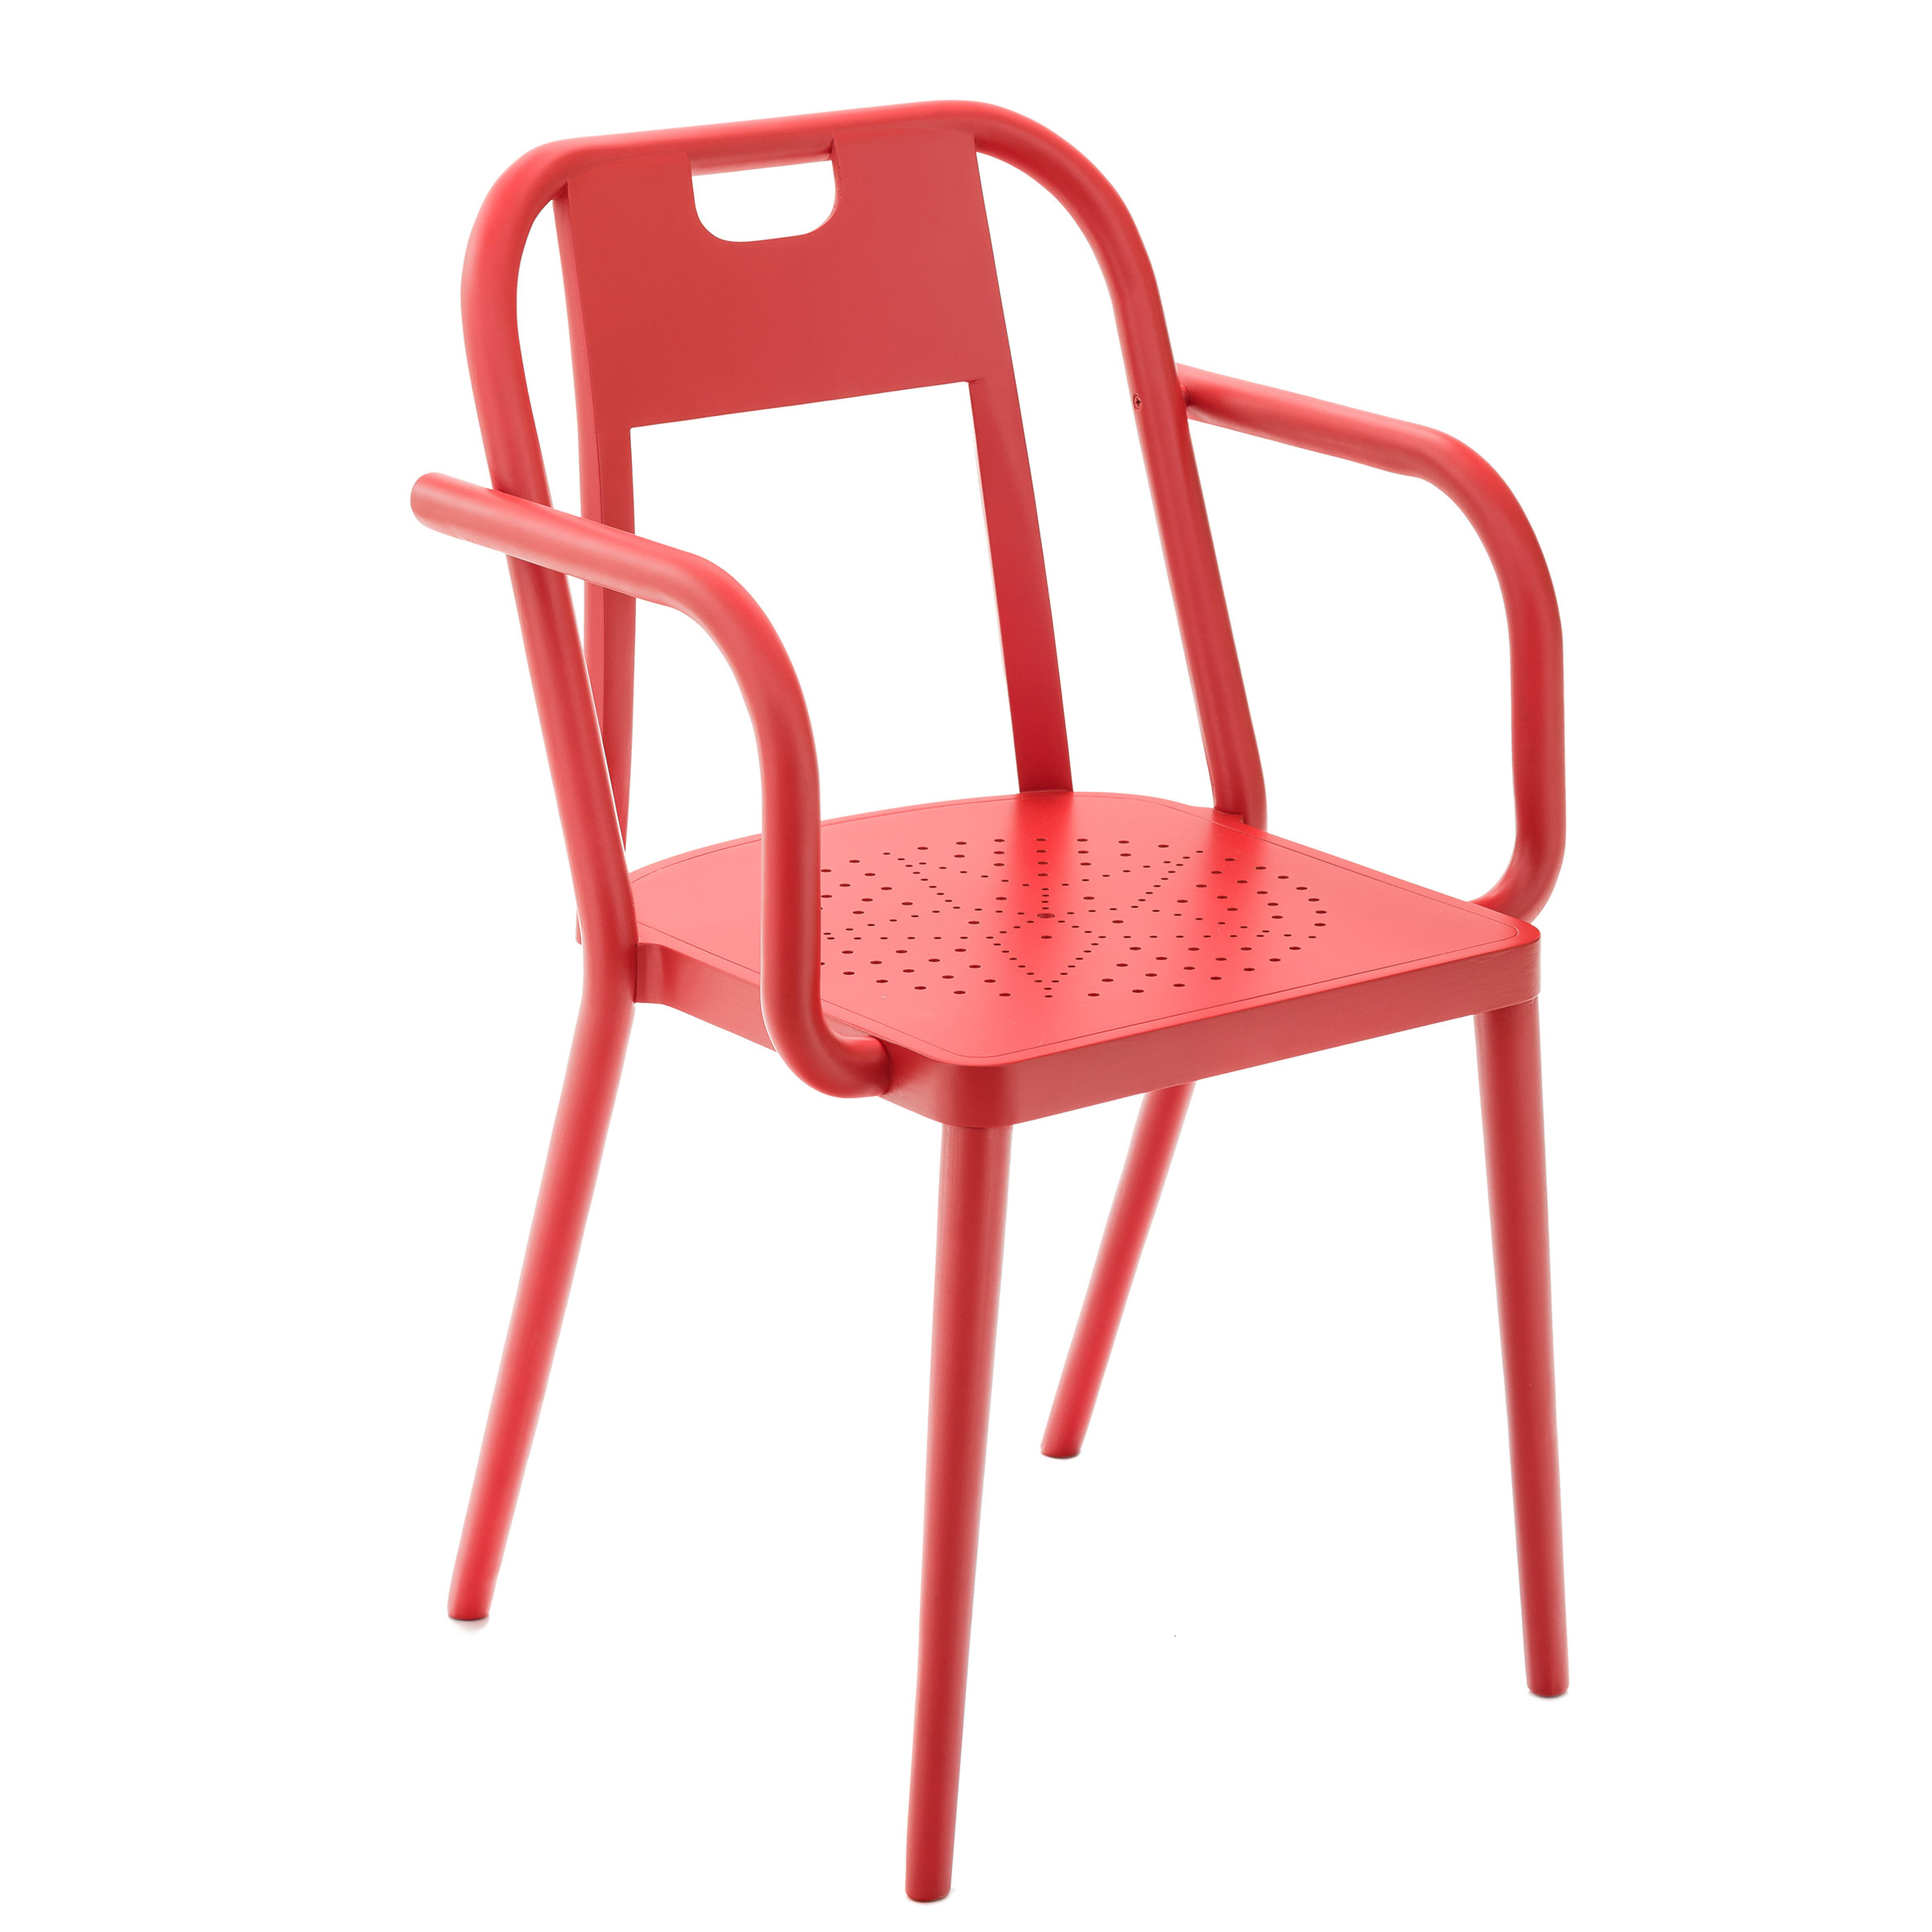 Ineke Hans combines new and old production techniques to create chair for the Kunsthalle Wien